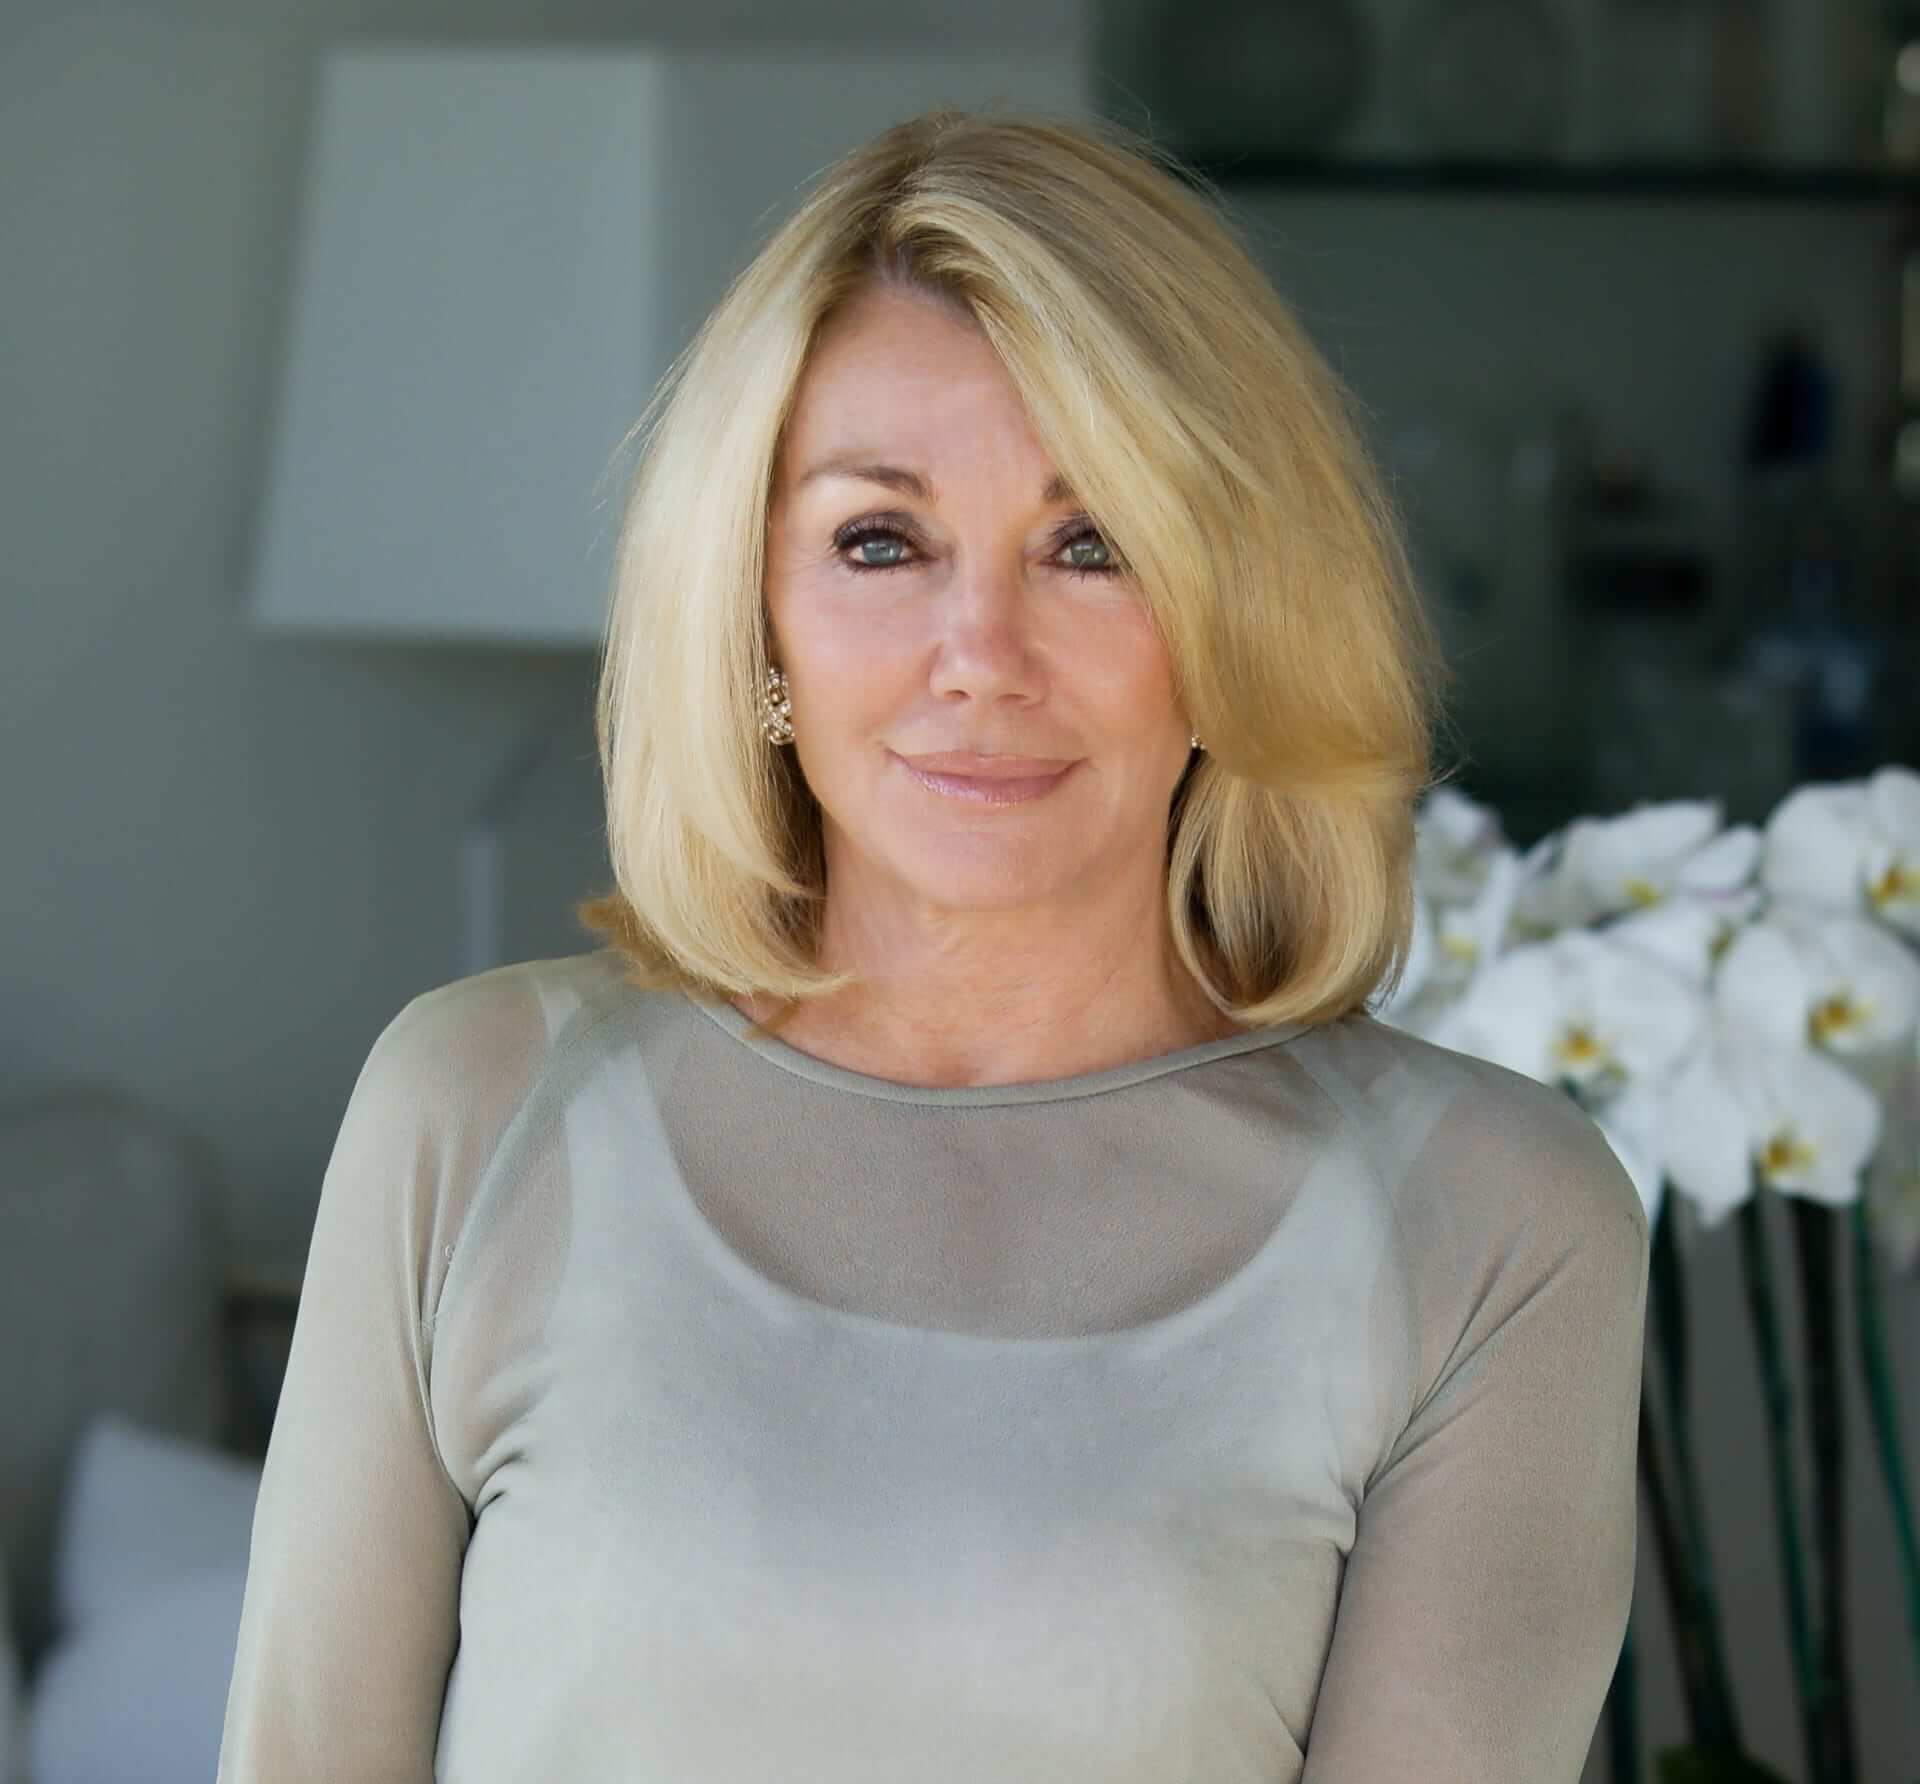 TOP BEVERLY HILLS REAL ESTATE AGENT